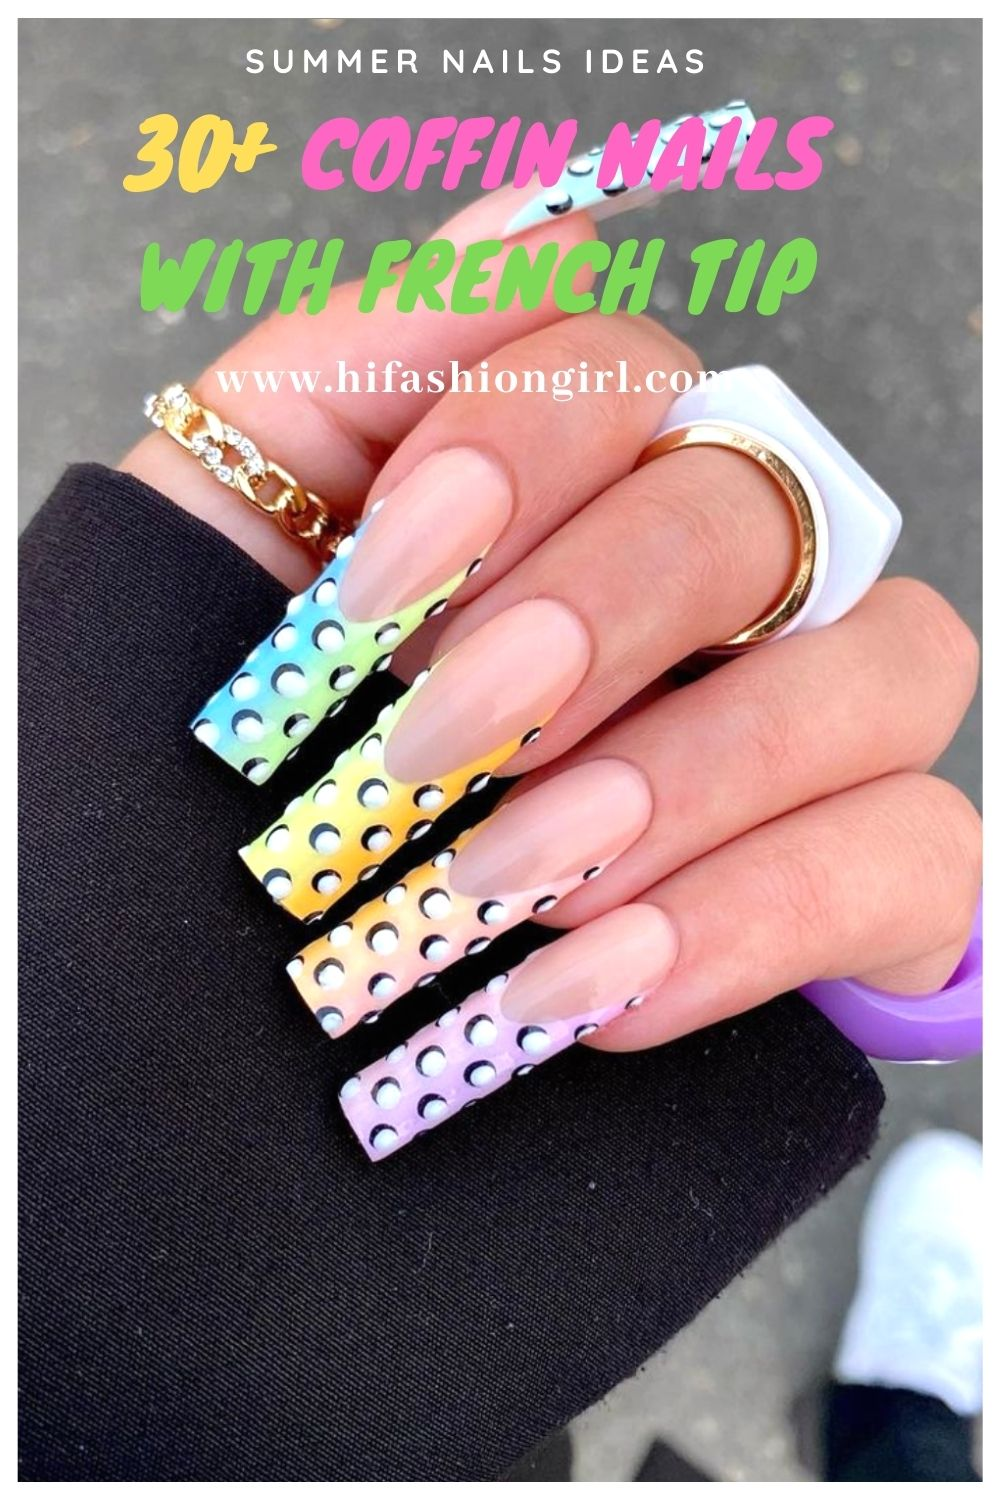 Best Summer acrylic coffin nails design you'll flip for in 2021!